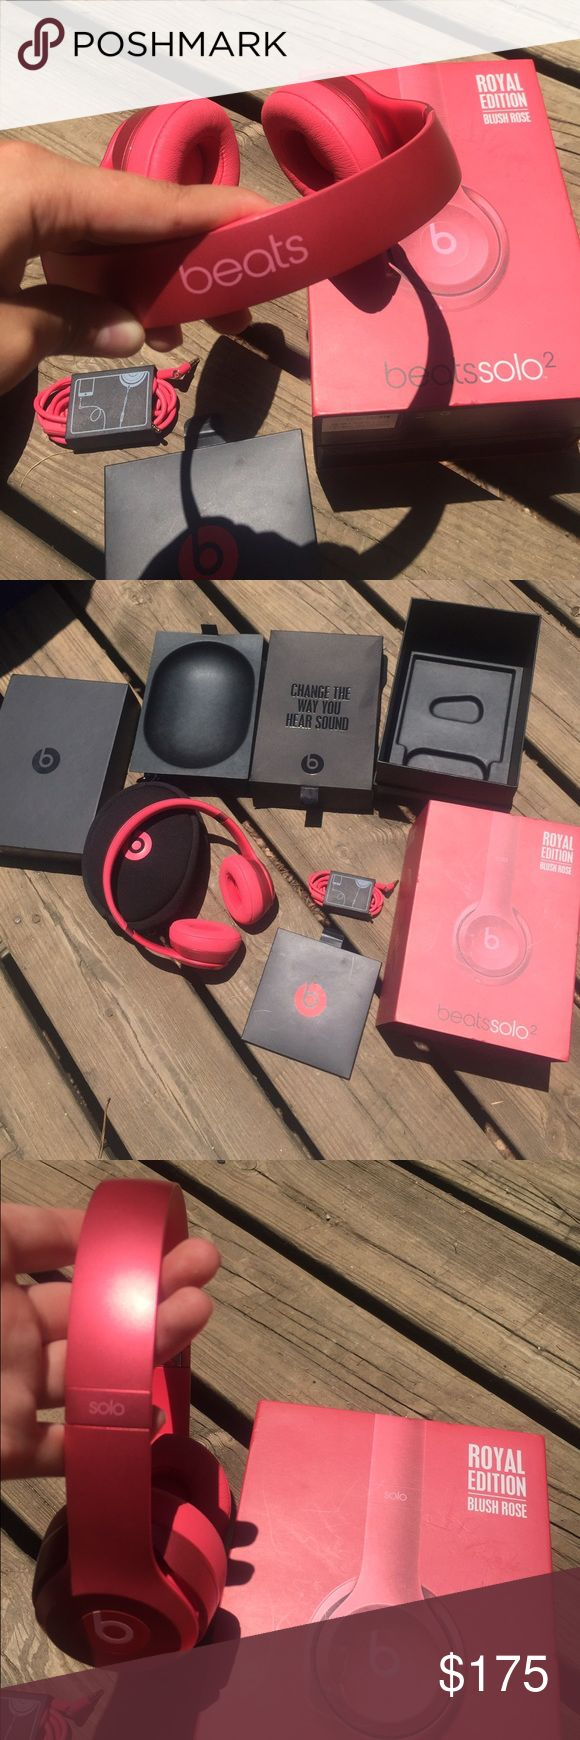 Beats Solo 2 Headphones by Dre Blush Rose color. No flaws & work perfectly, come with original box and manual. Case is a little dirty, but doesn't affect headphones. I'm selling them bc I just don't use them as much as I thought I would (bought them 5 months ago from Best Buy) BUNDLE TO SAVE Birkenstock Other